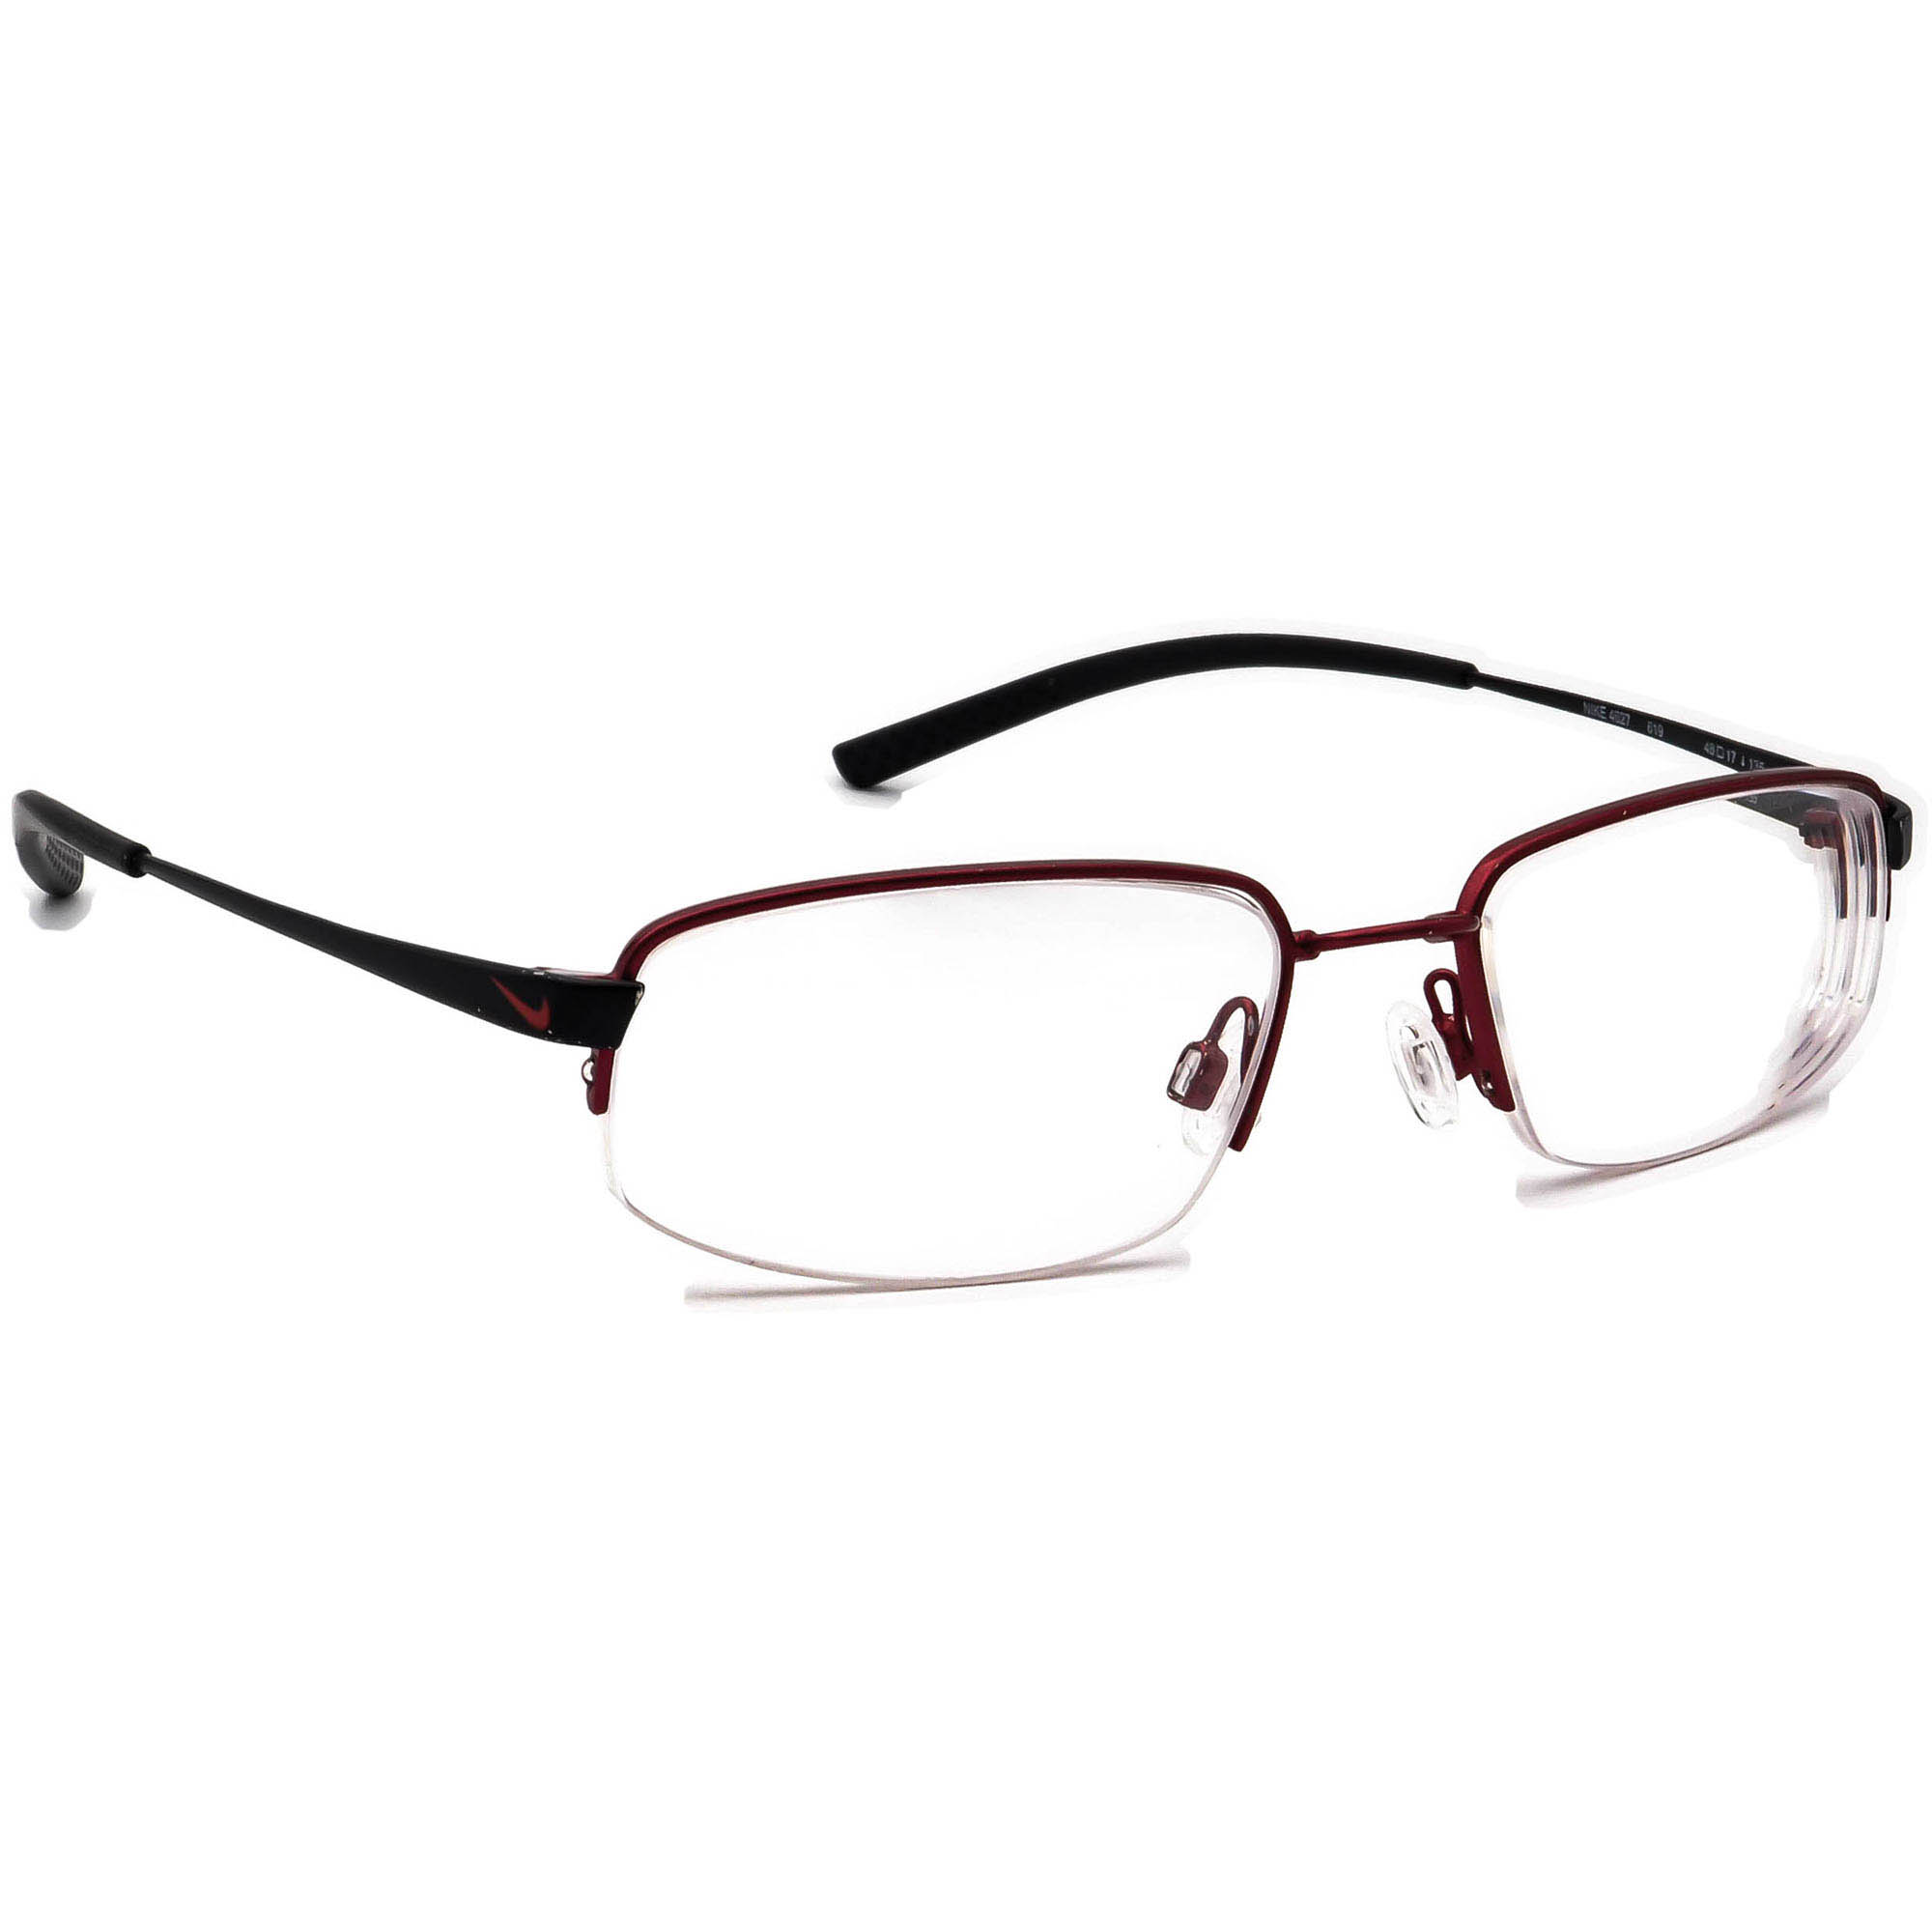 Nike 4627 619 Flexon Eyeglasses